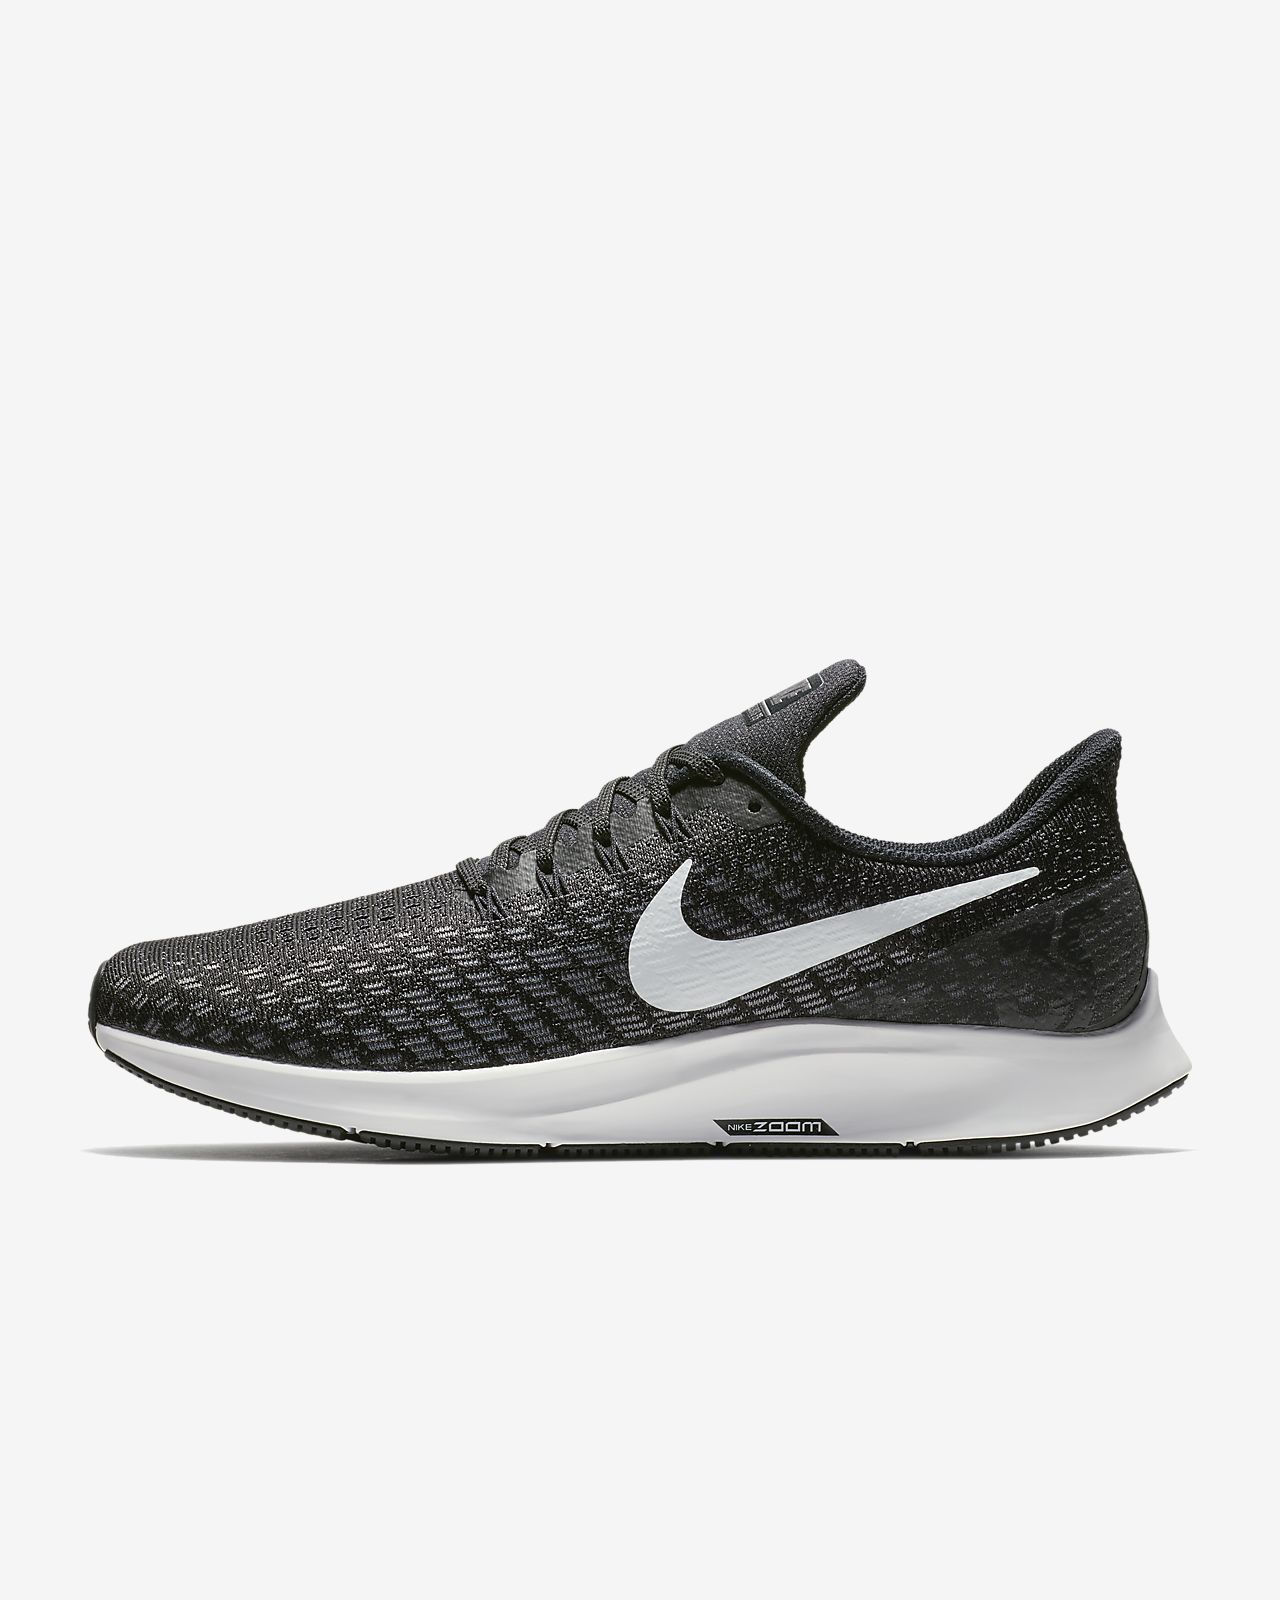 ab93201ac88 Nike Air Zoom Pegasus 35 Men s Running Shoe. Nike.com GB